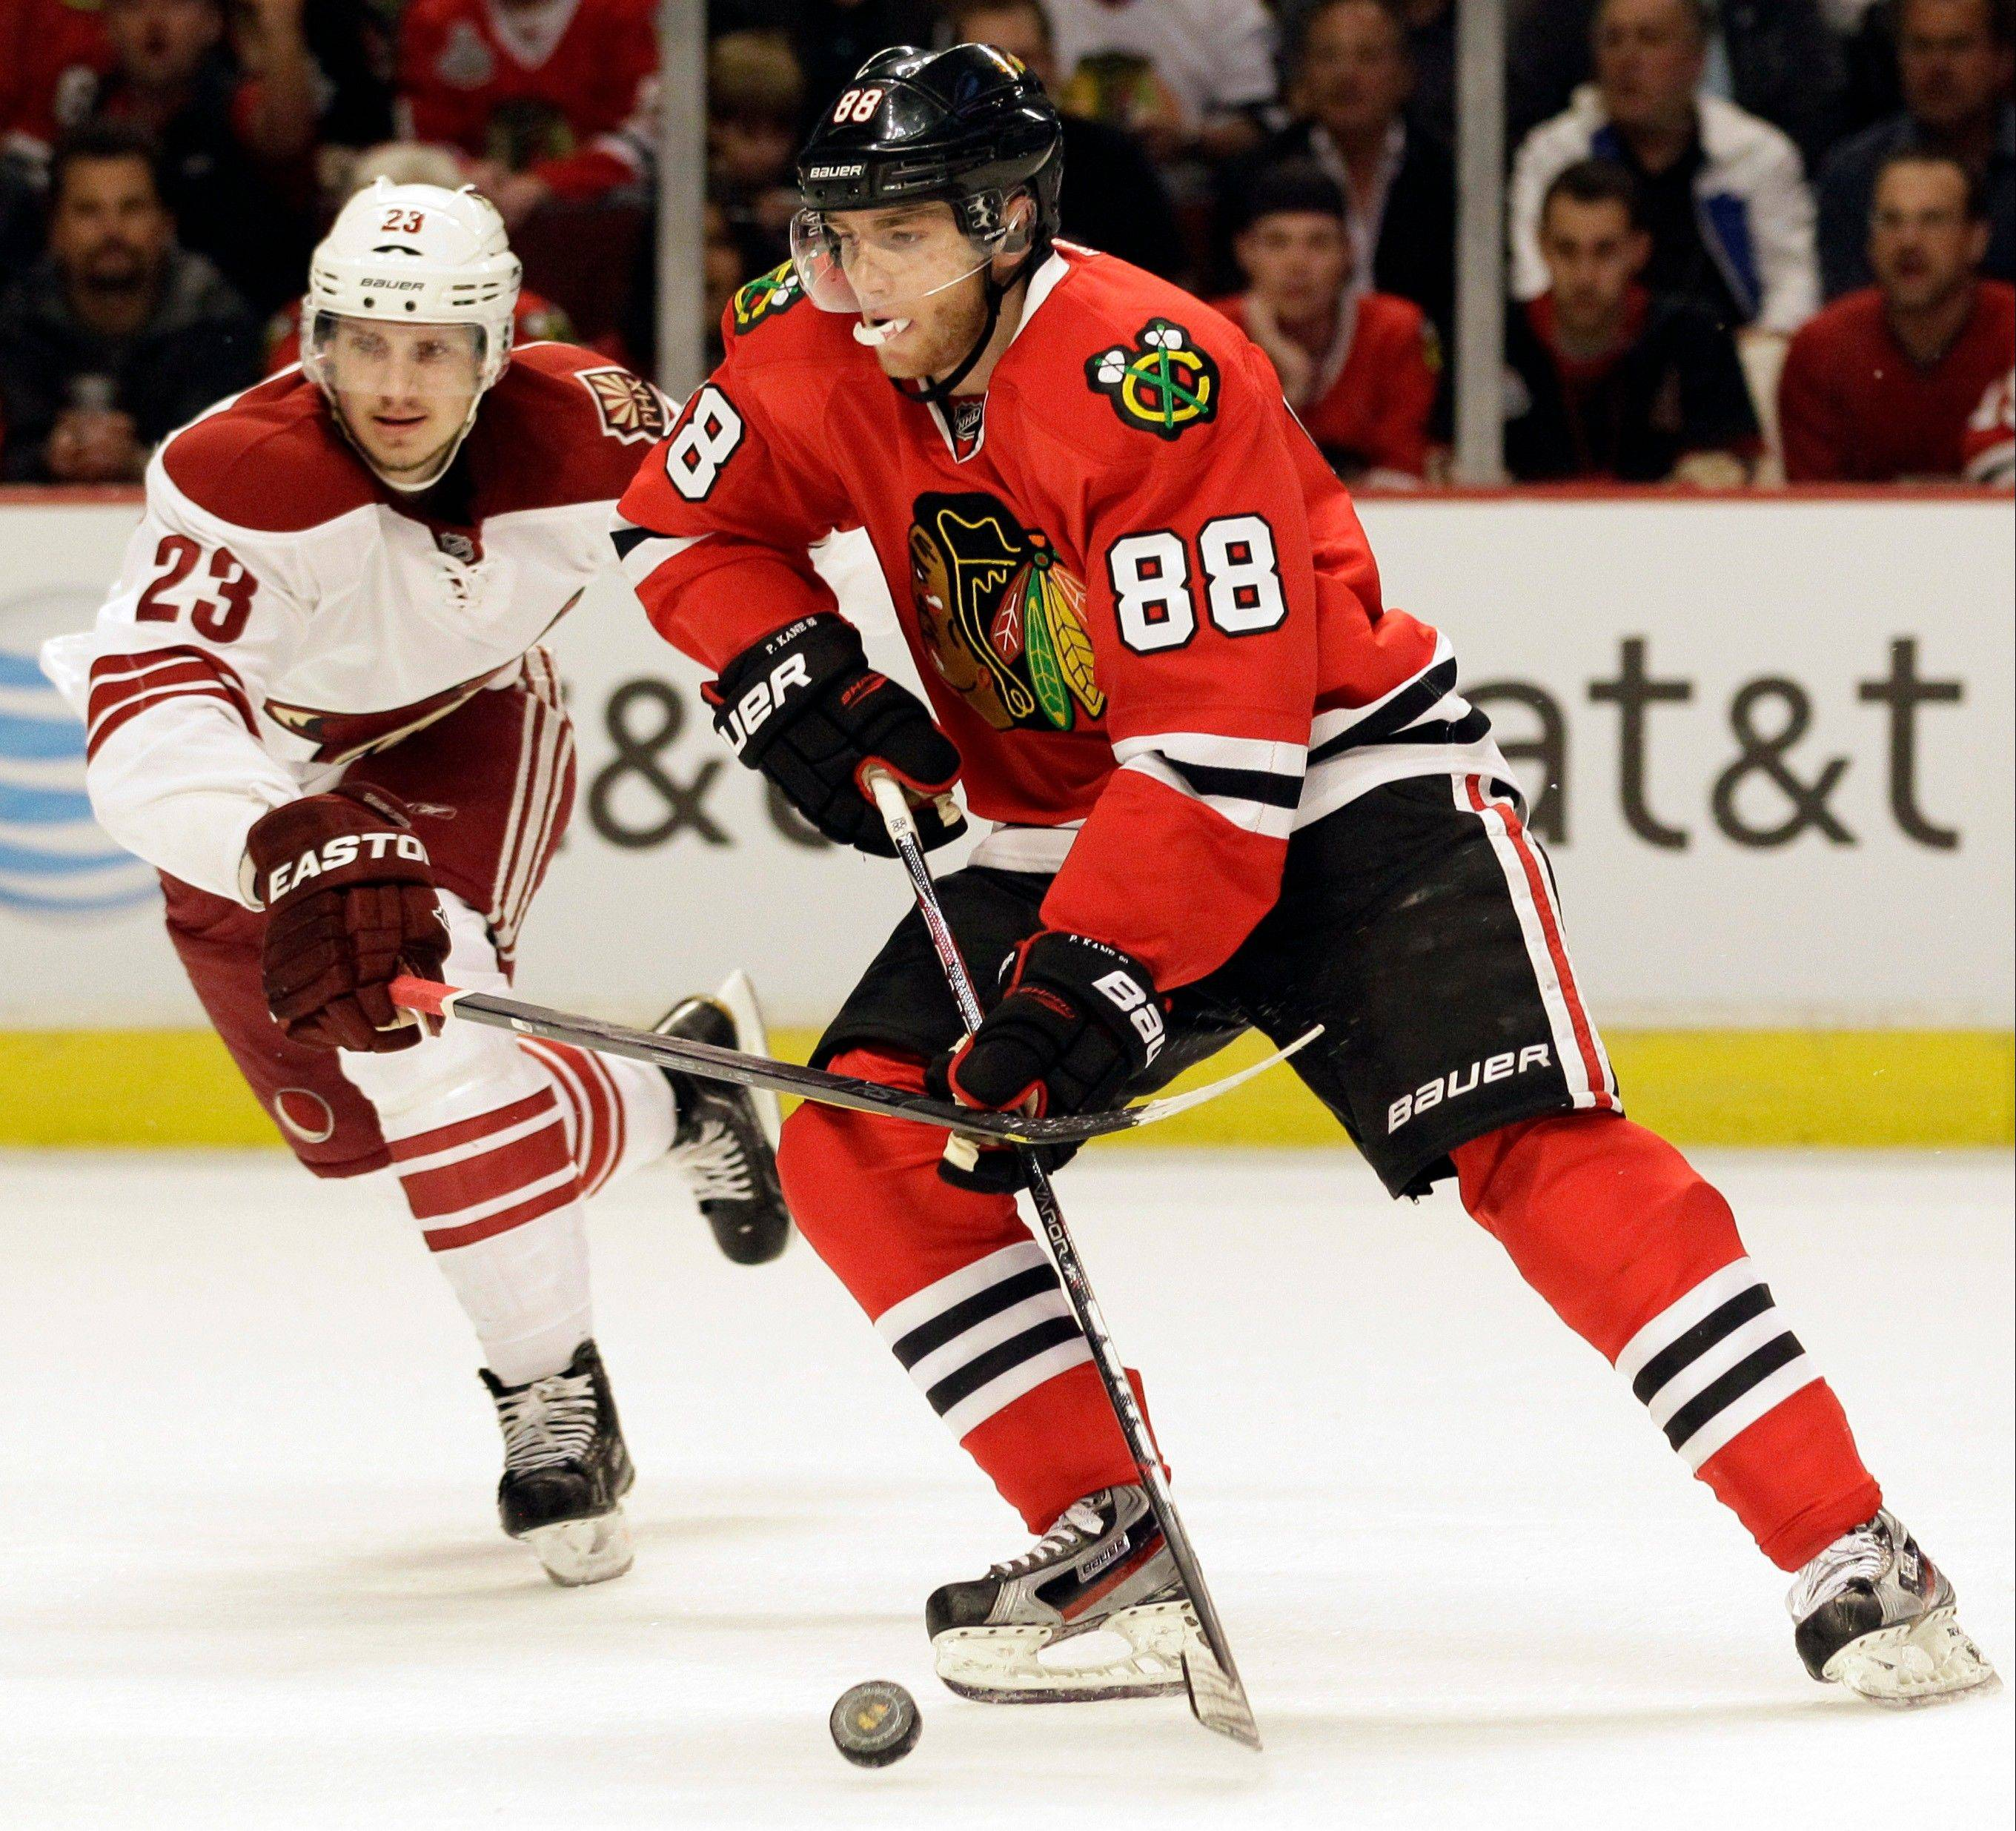 Patrick Kane belongs on the right wing and not at center, according to the Daily Herald's Tim Sassone.